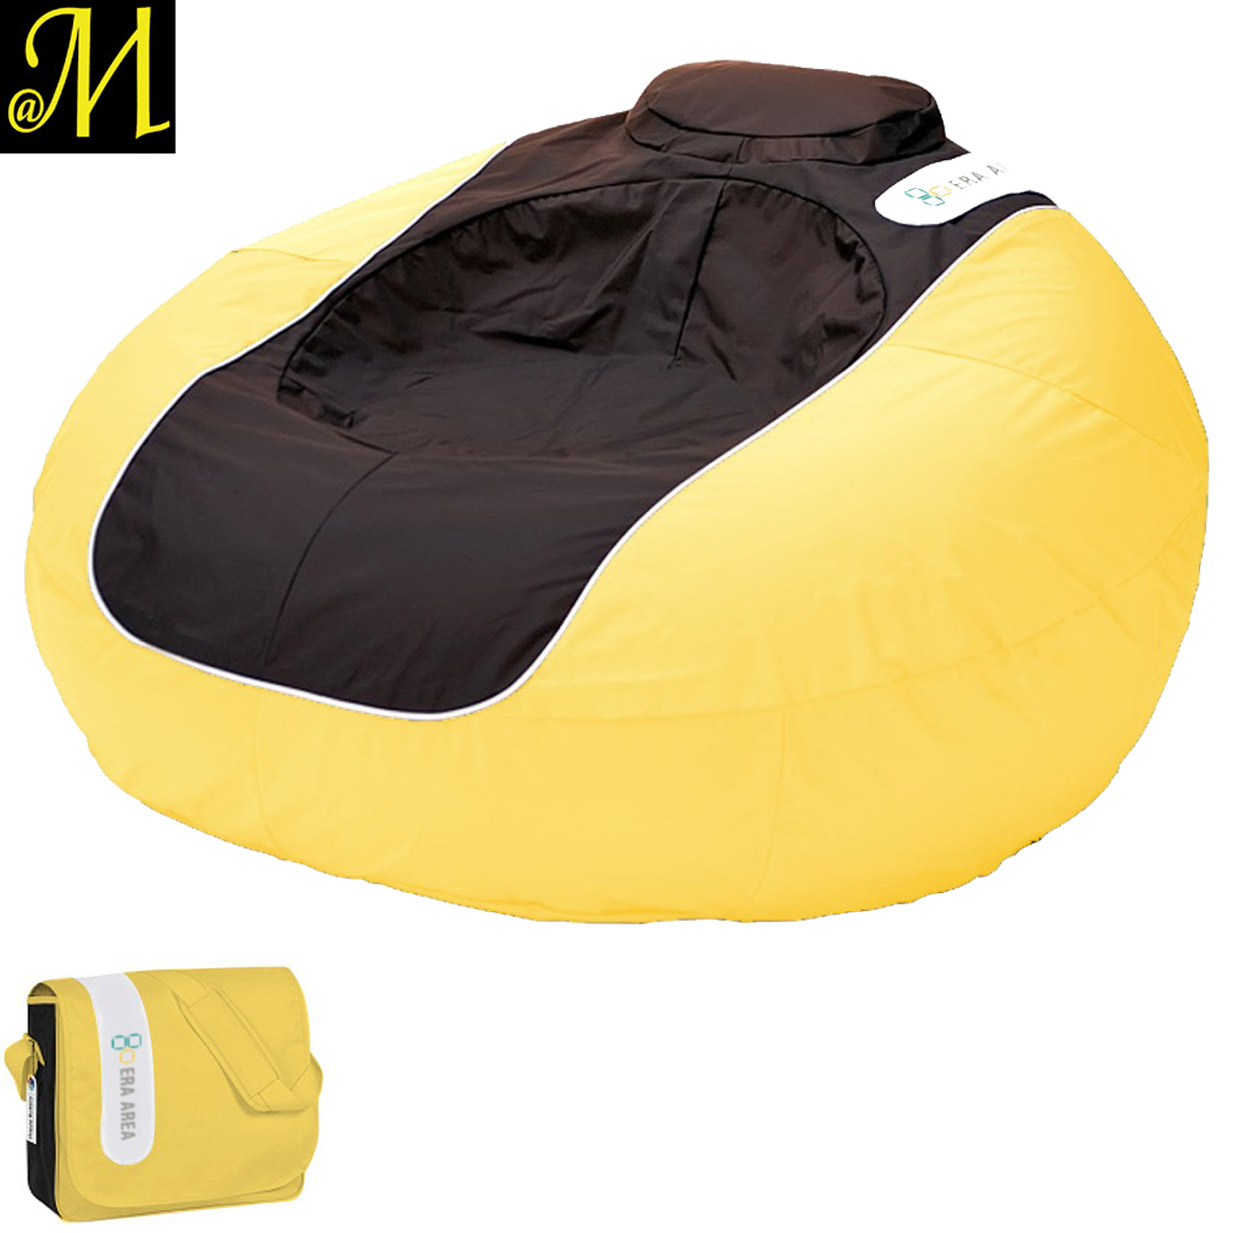 lazy lounger Bean Bag,Bean Bag chair,Bean Bag